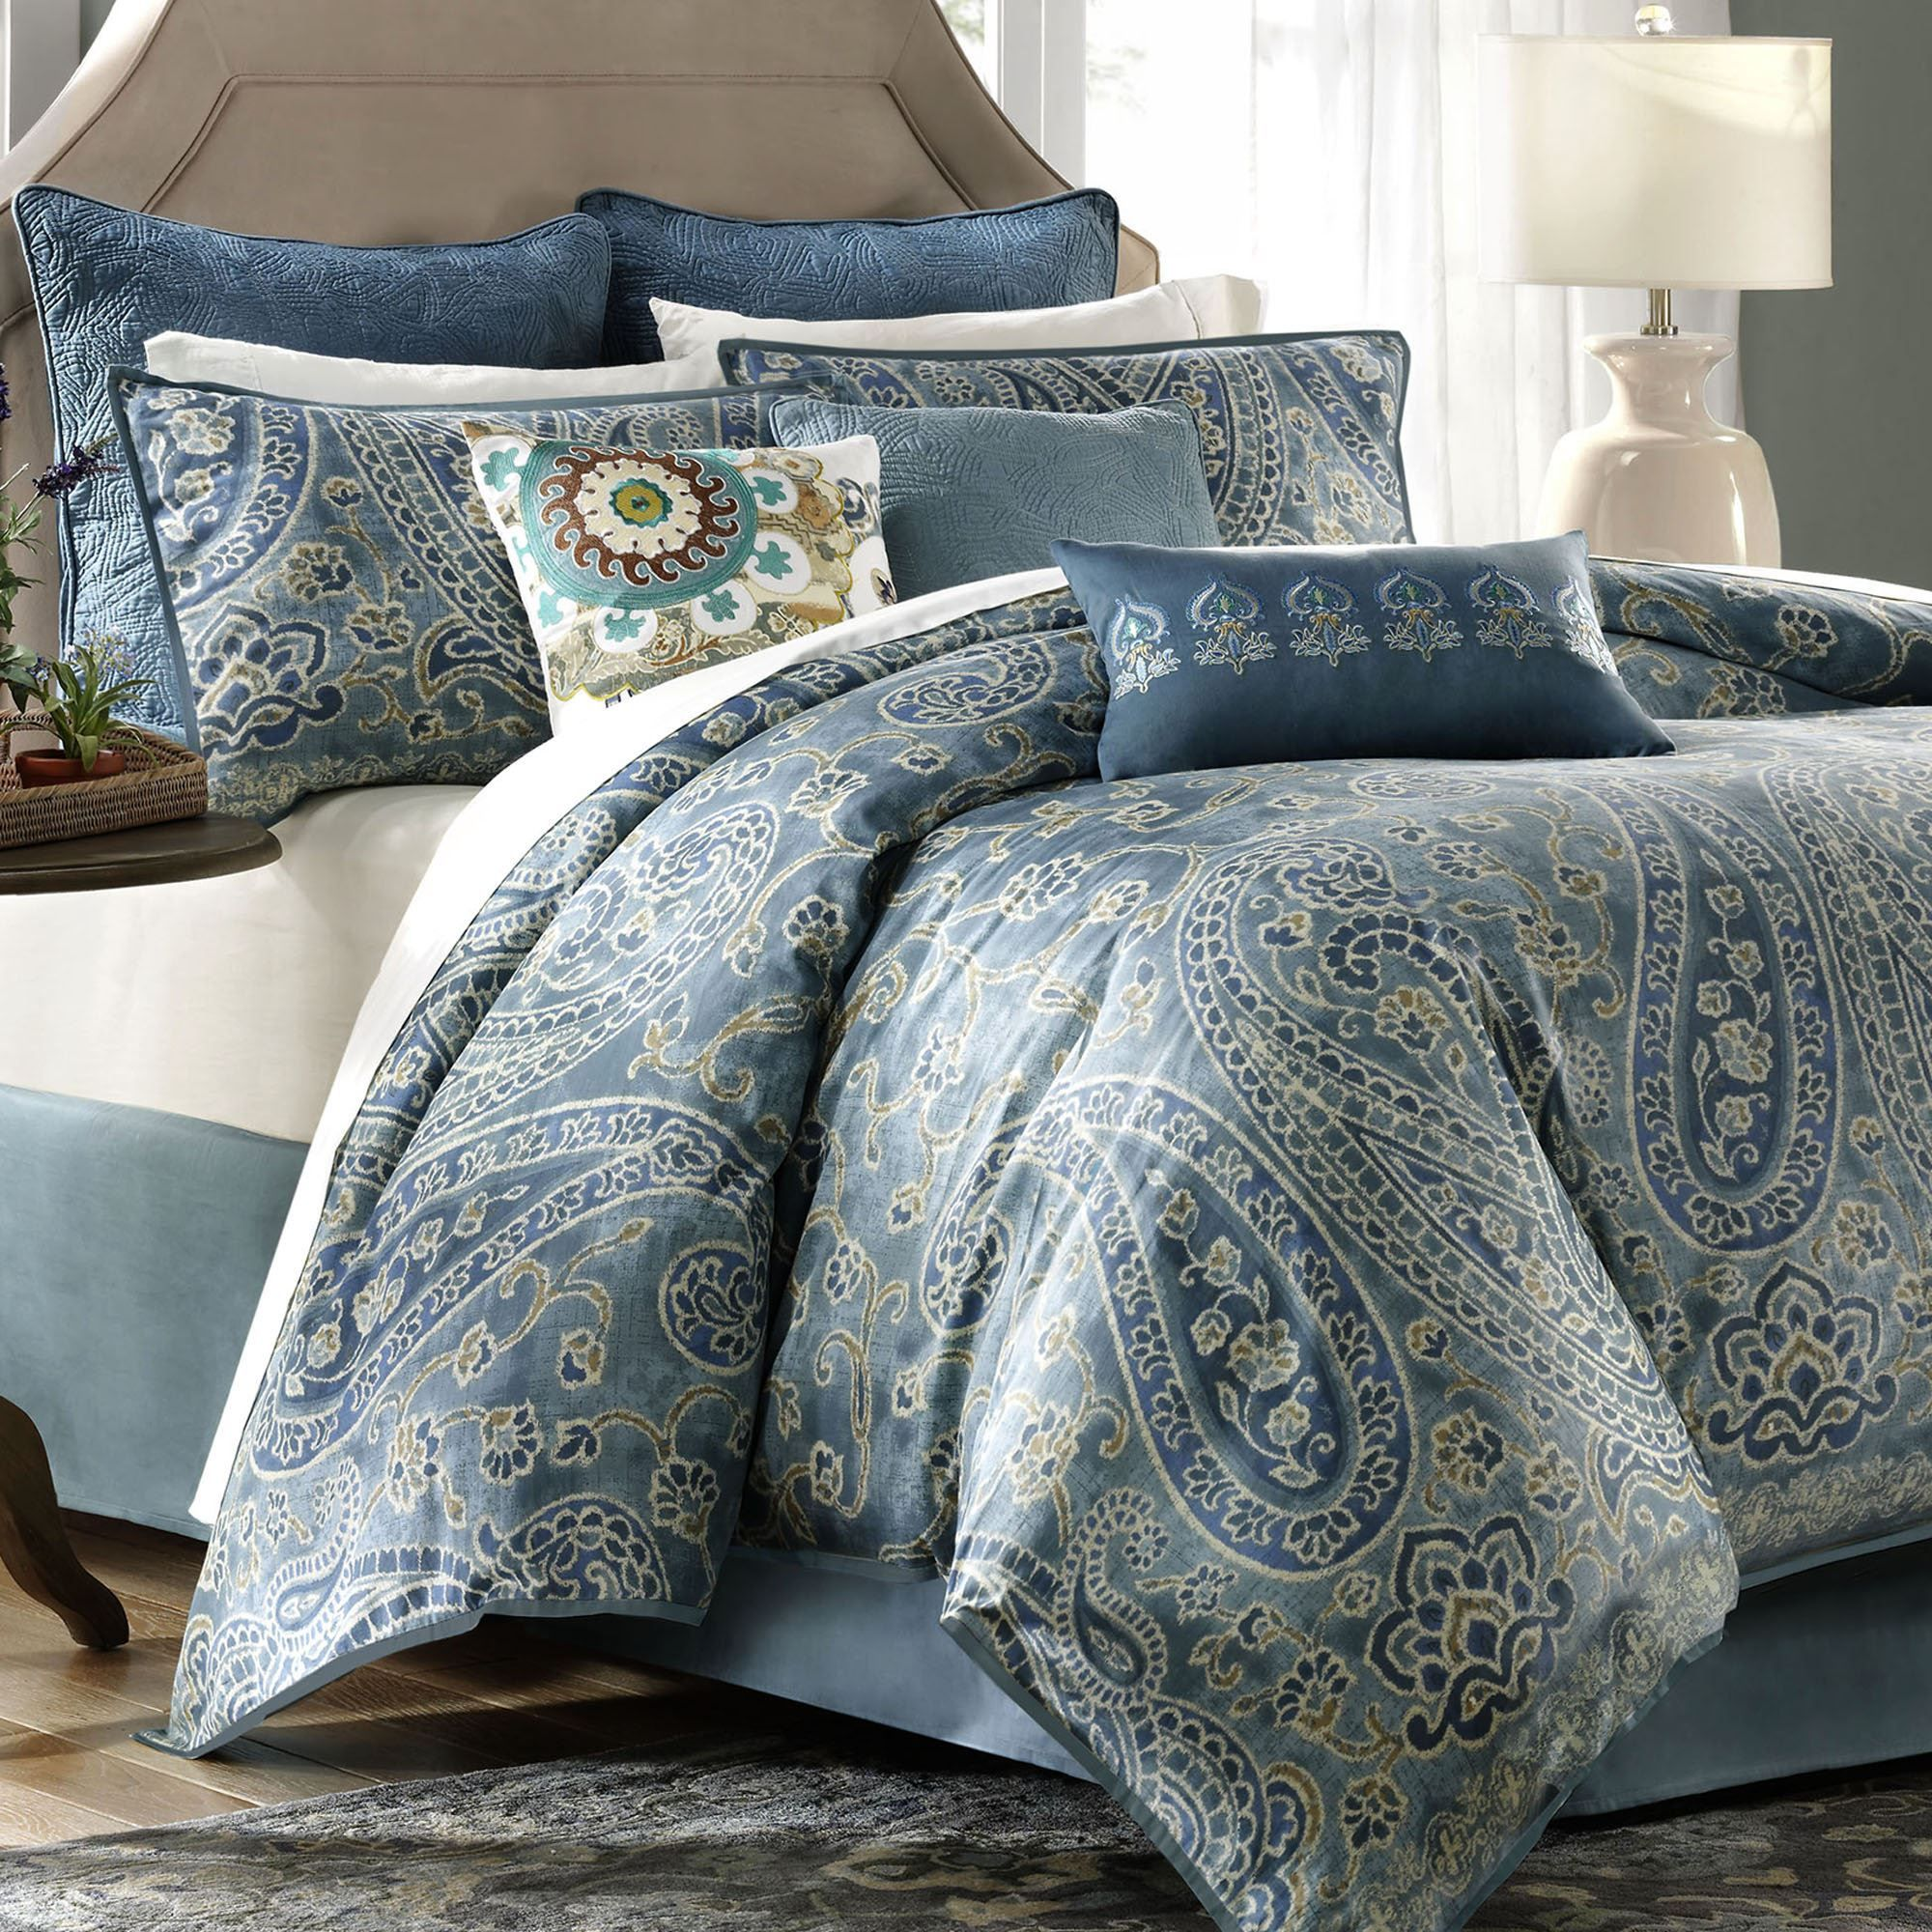 Blue Paisley Bedding Yahoo Image Search Results Bedding Sets Paisley Bedding Leather Bed